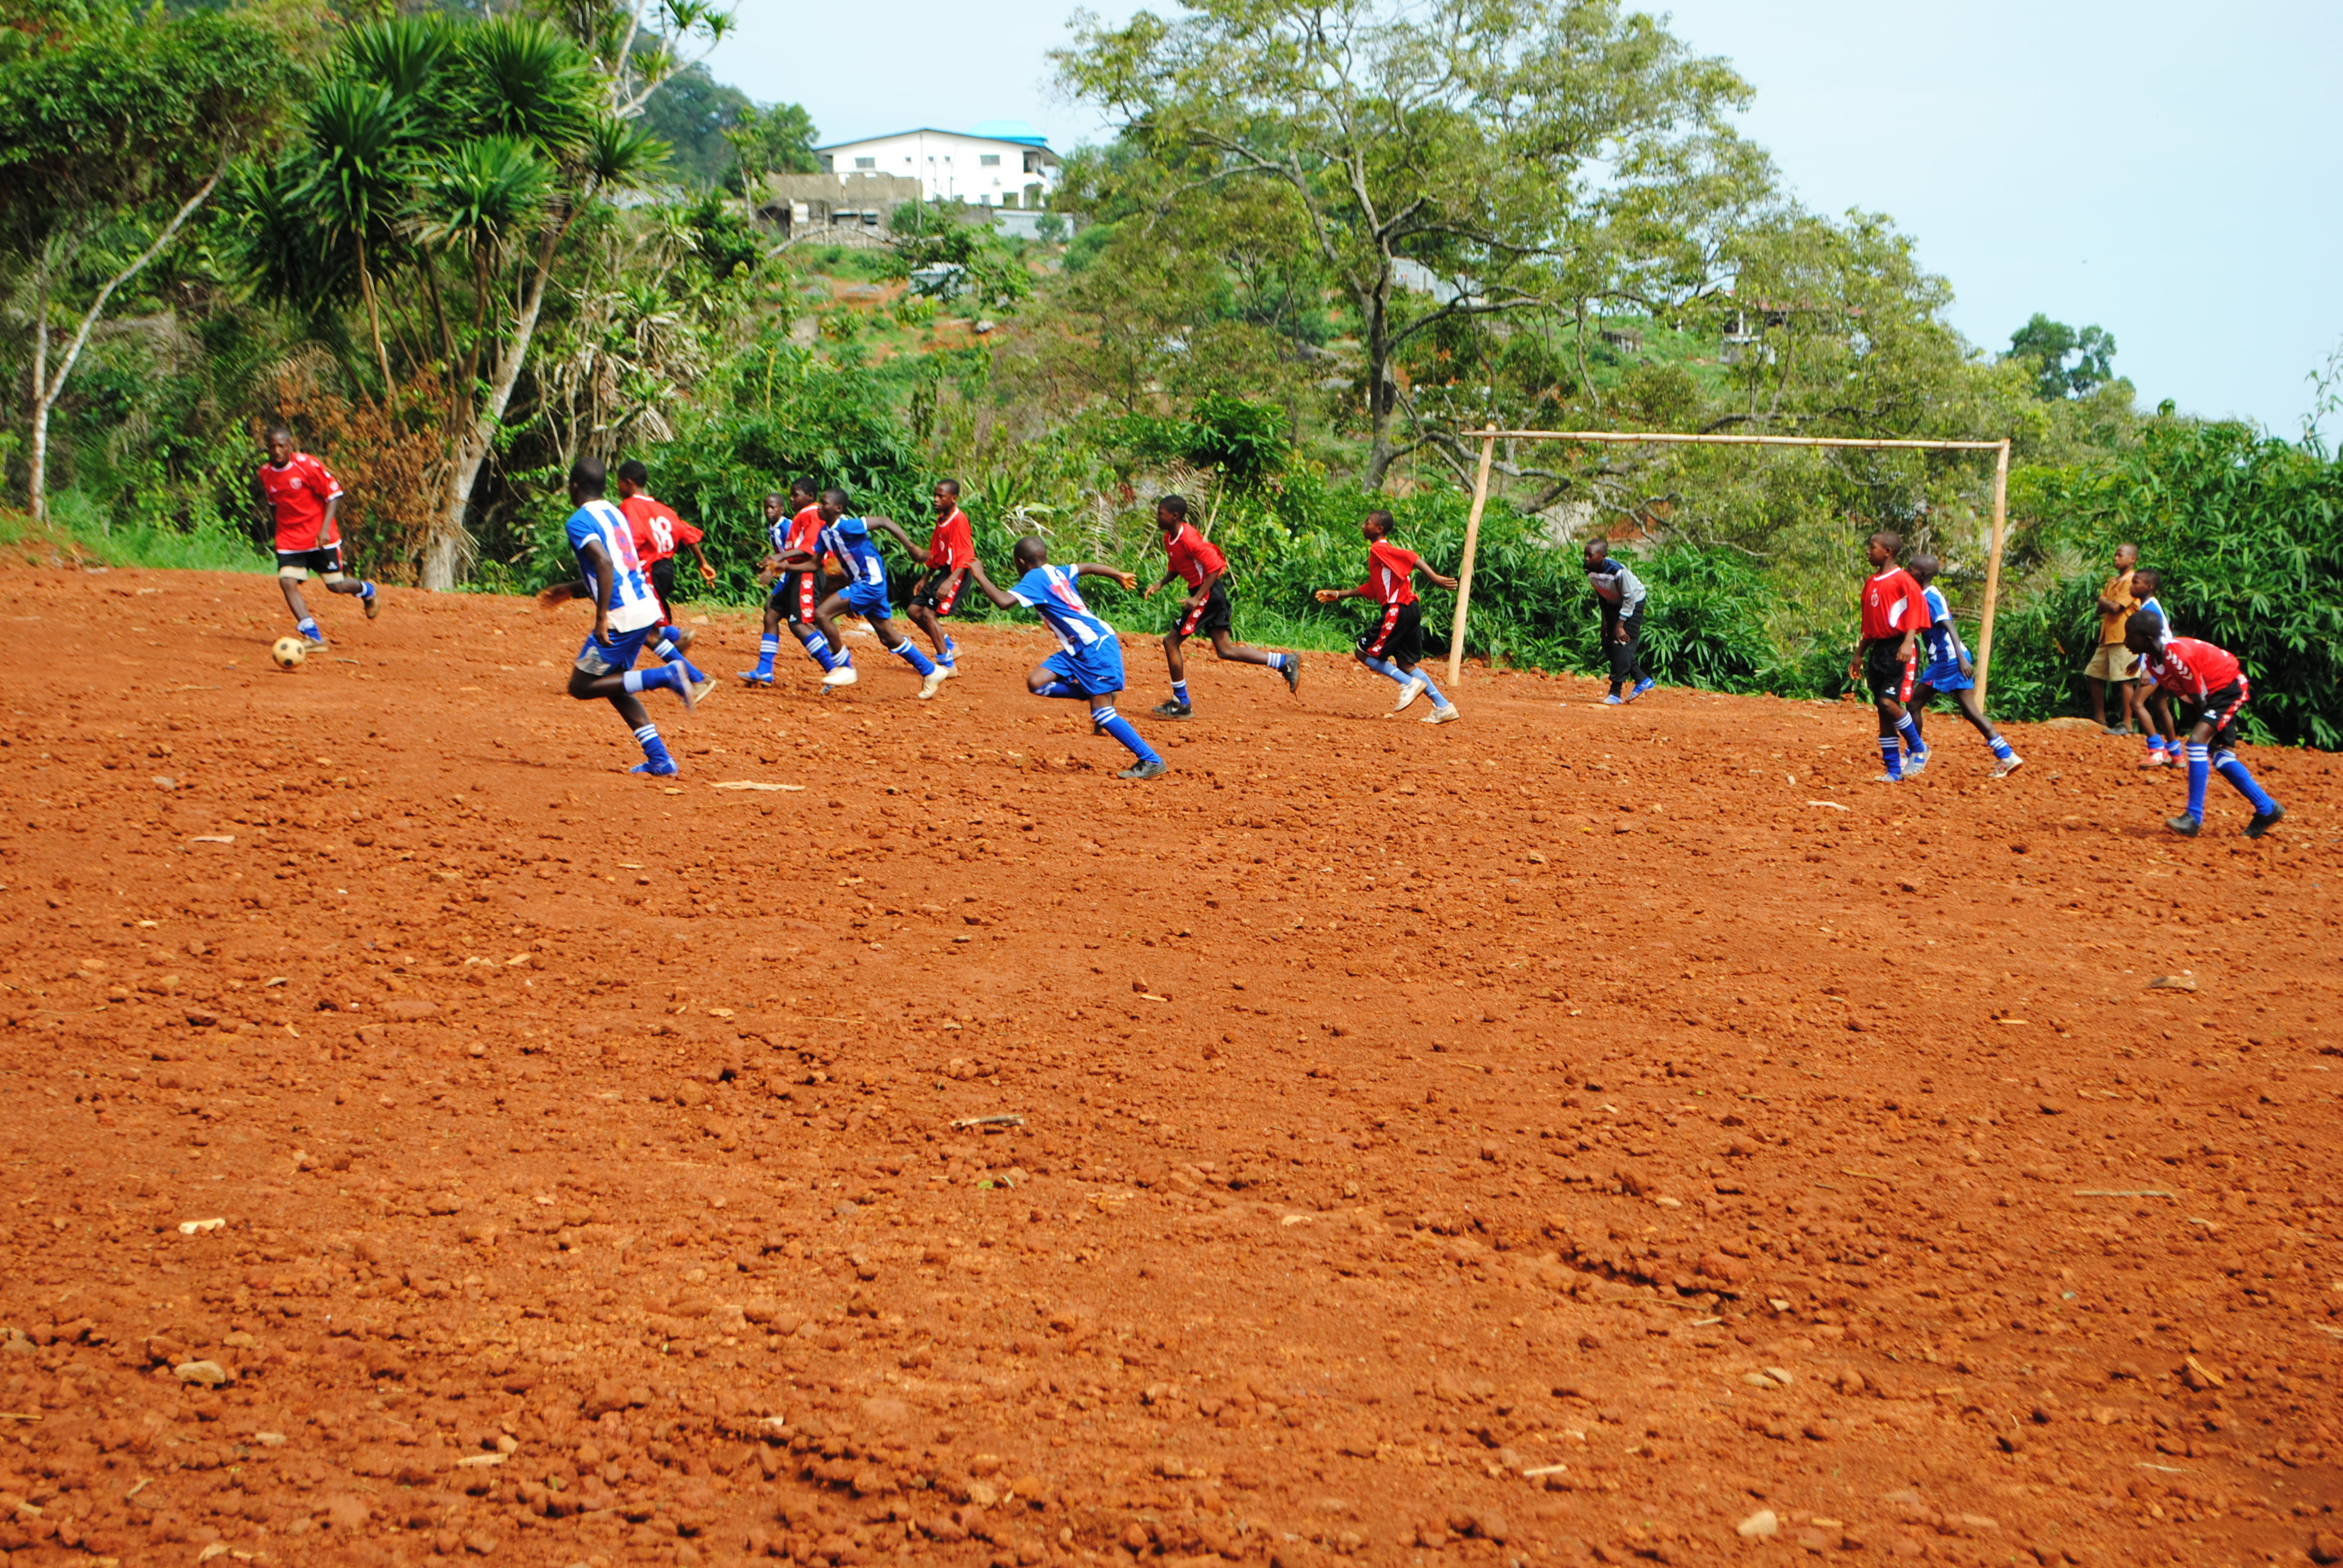 May 2012 - Action4schools team visited REC Primary and played a friendly match in the rugged field.